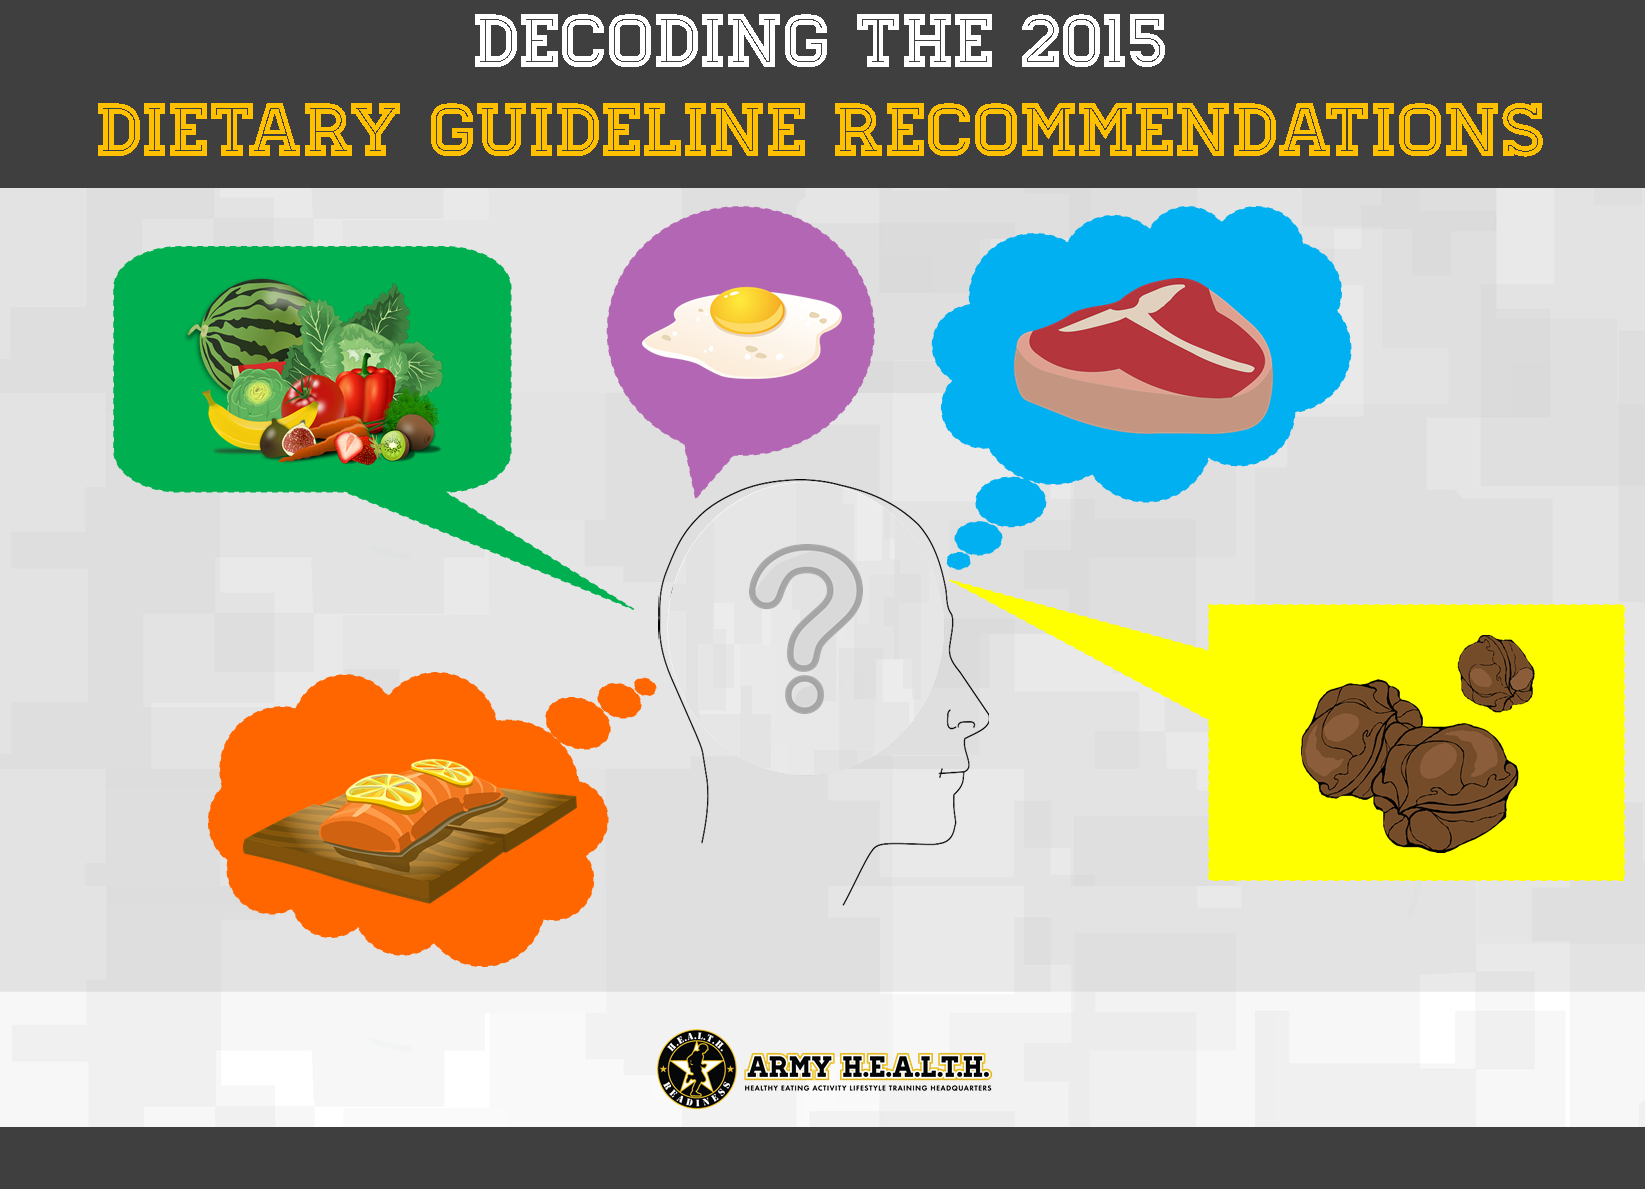 Decoding the 2015 Dietary Guideline Recommendations